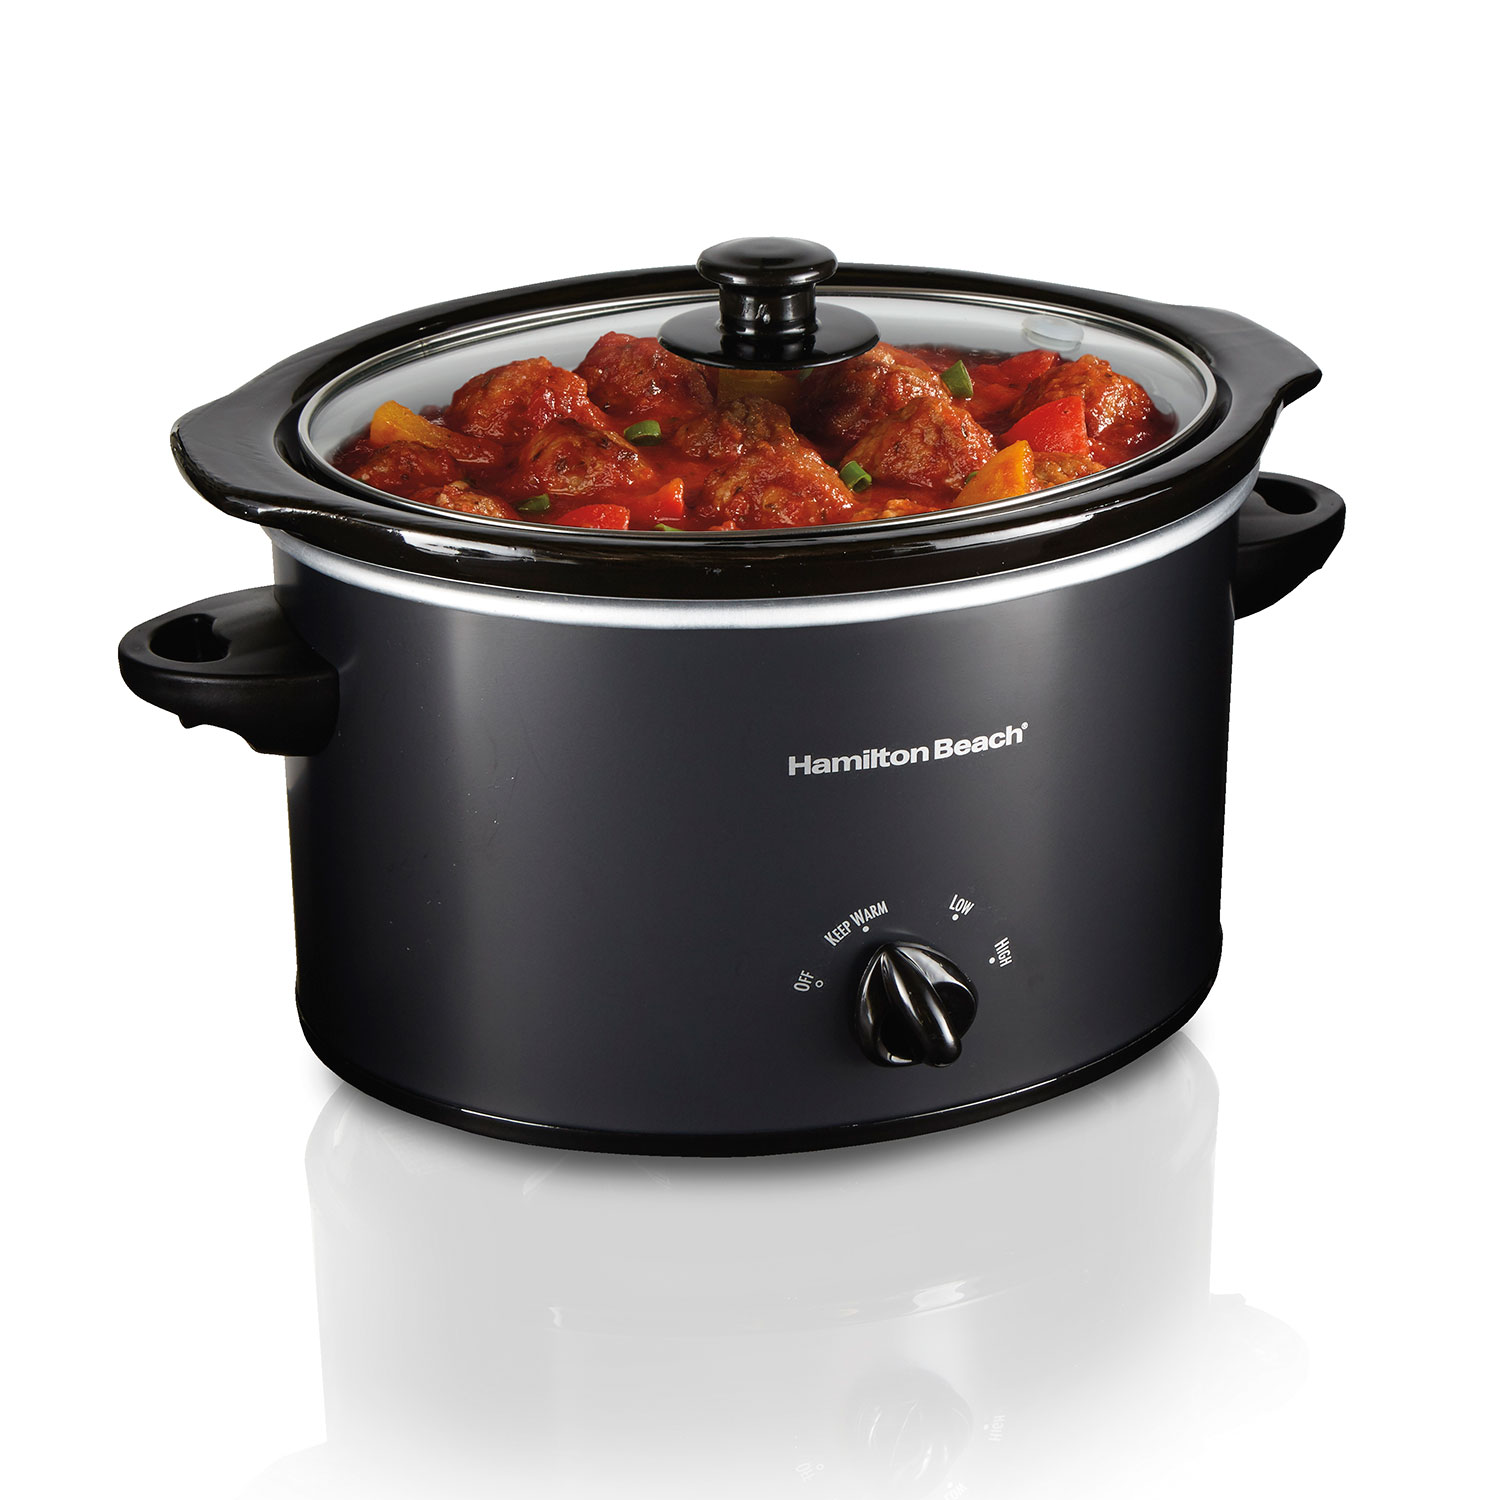 3 Quart Slow Cooker (Matte Black) (33231)